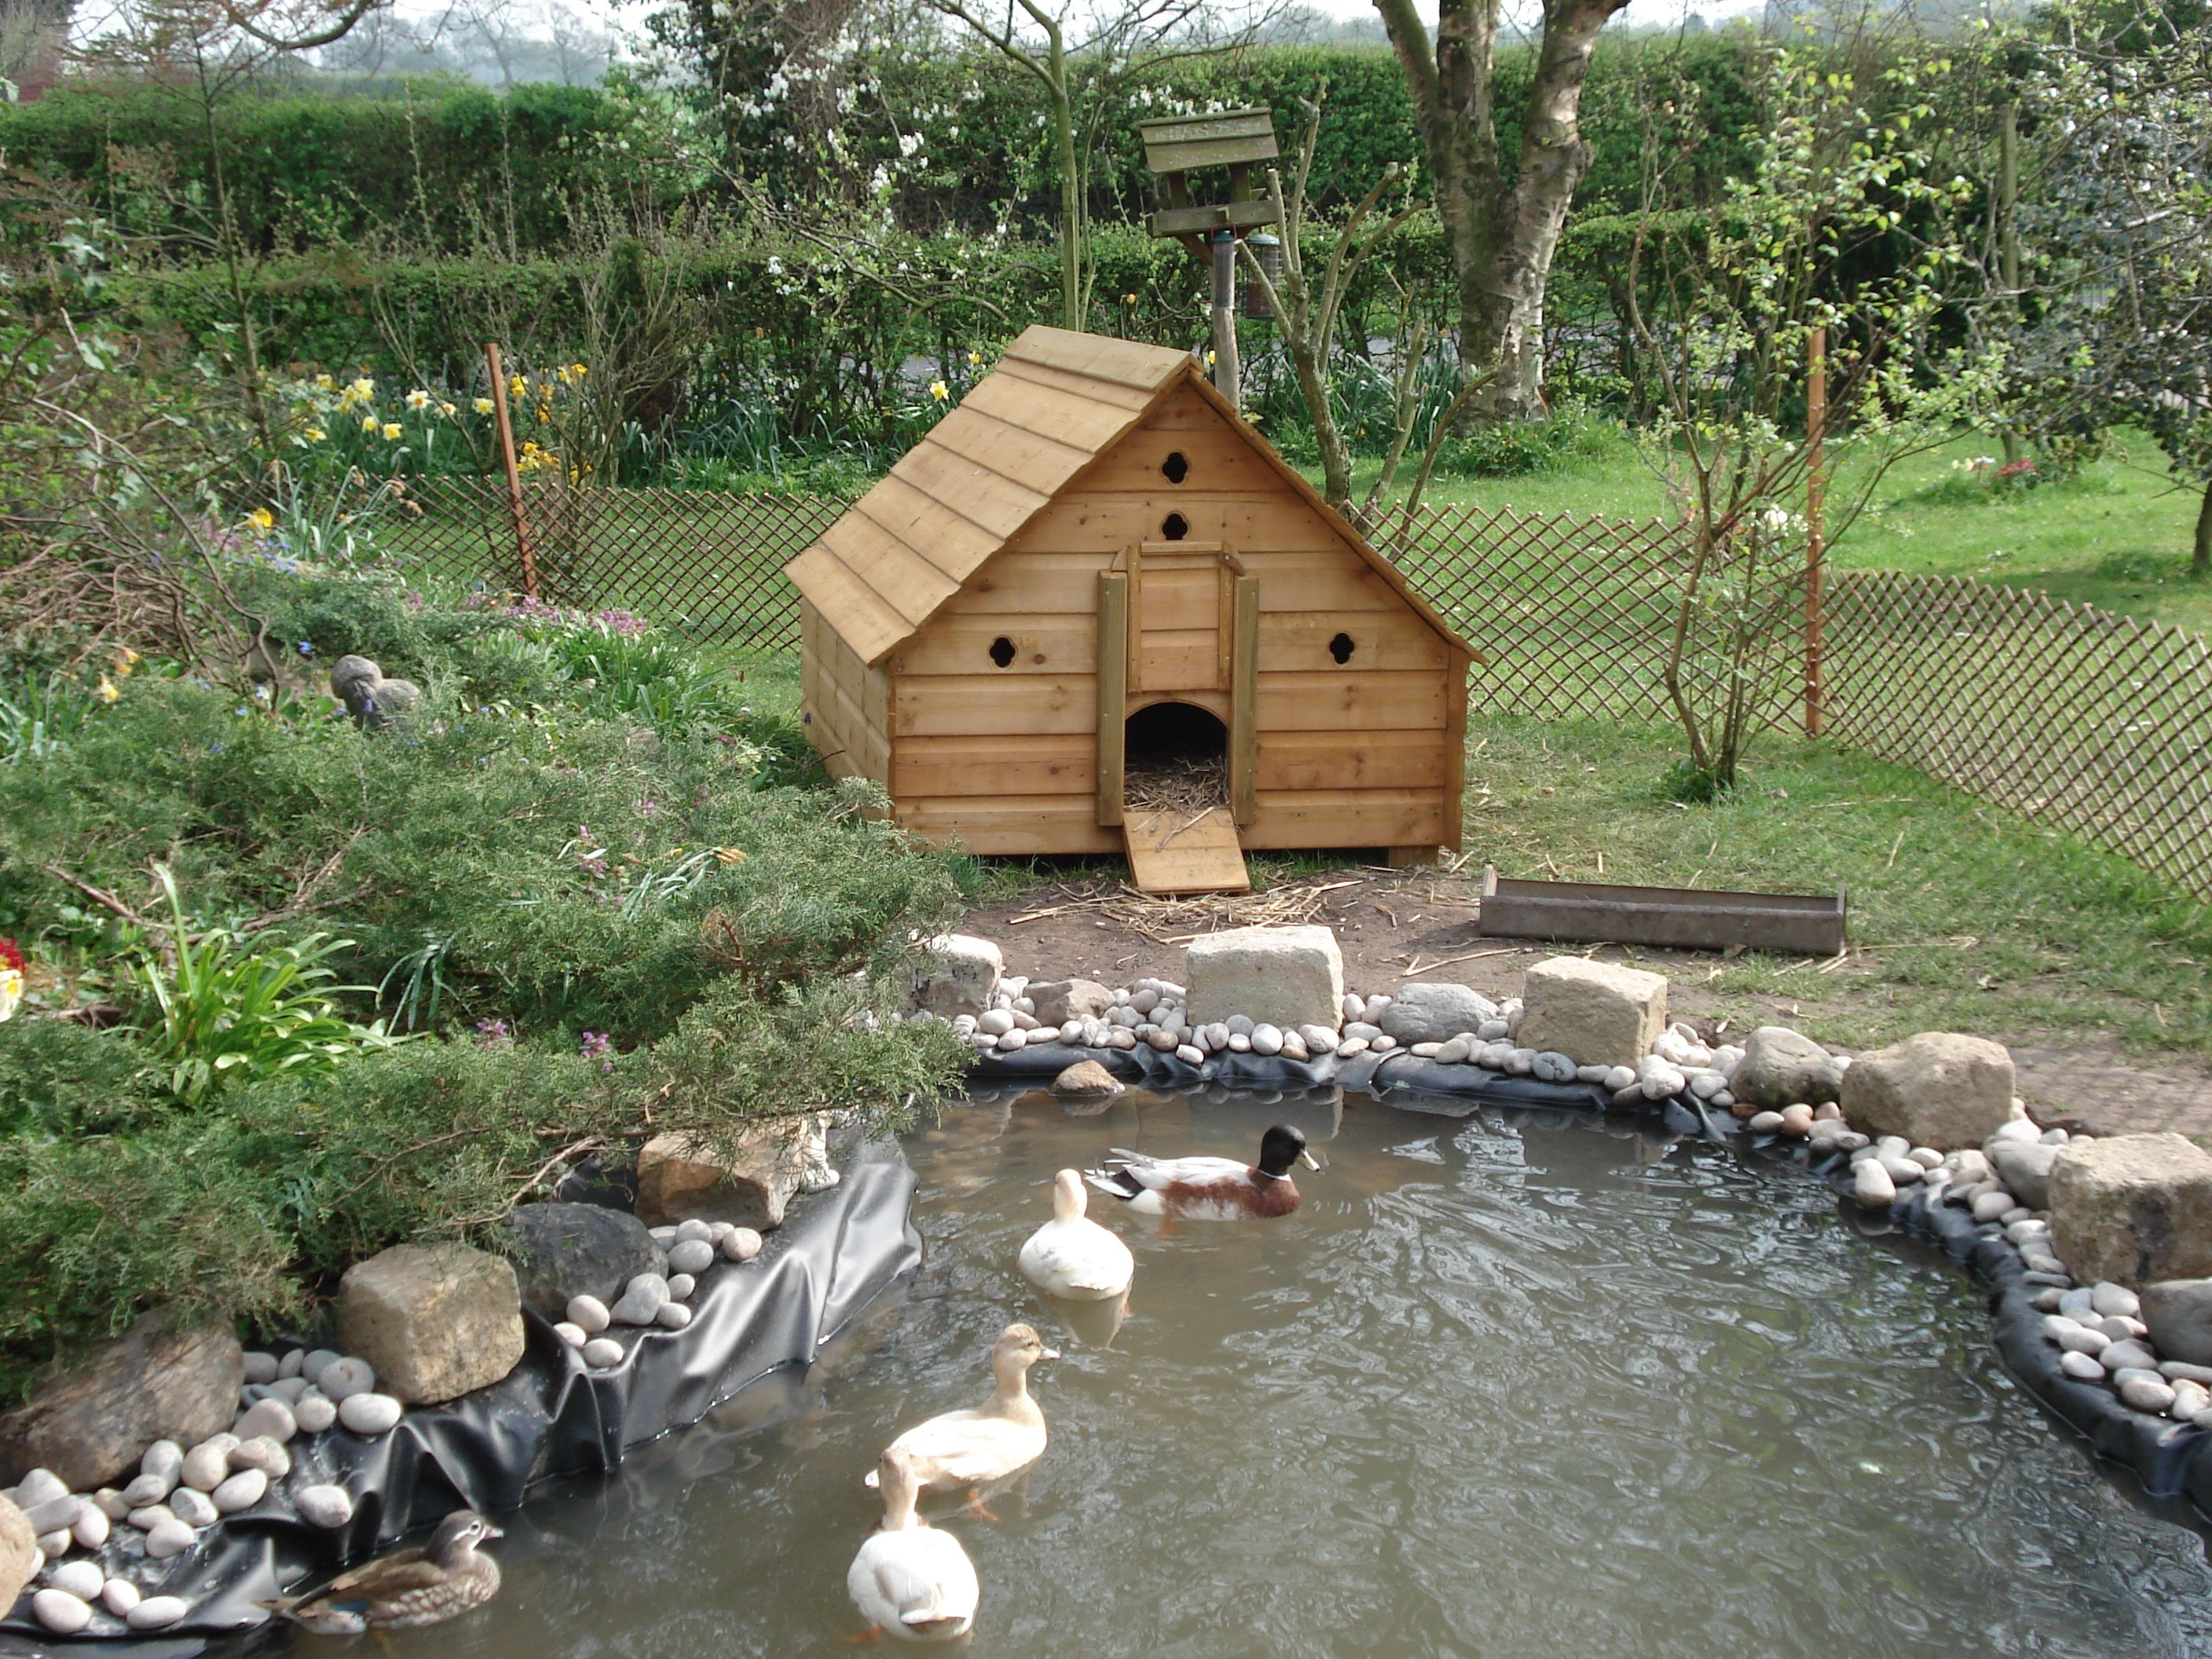 This Is More Realistic On The Look Of Our New Duck Area